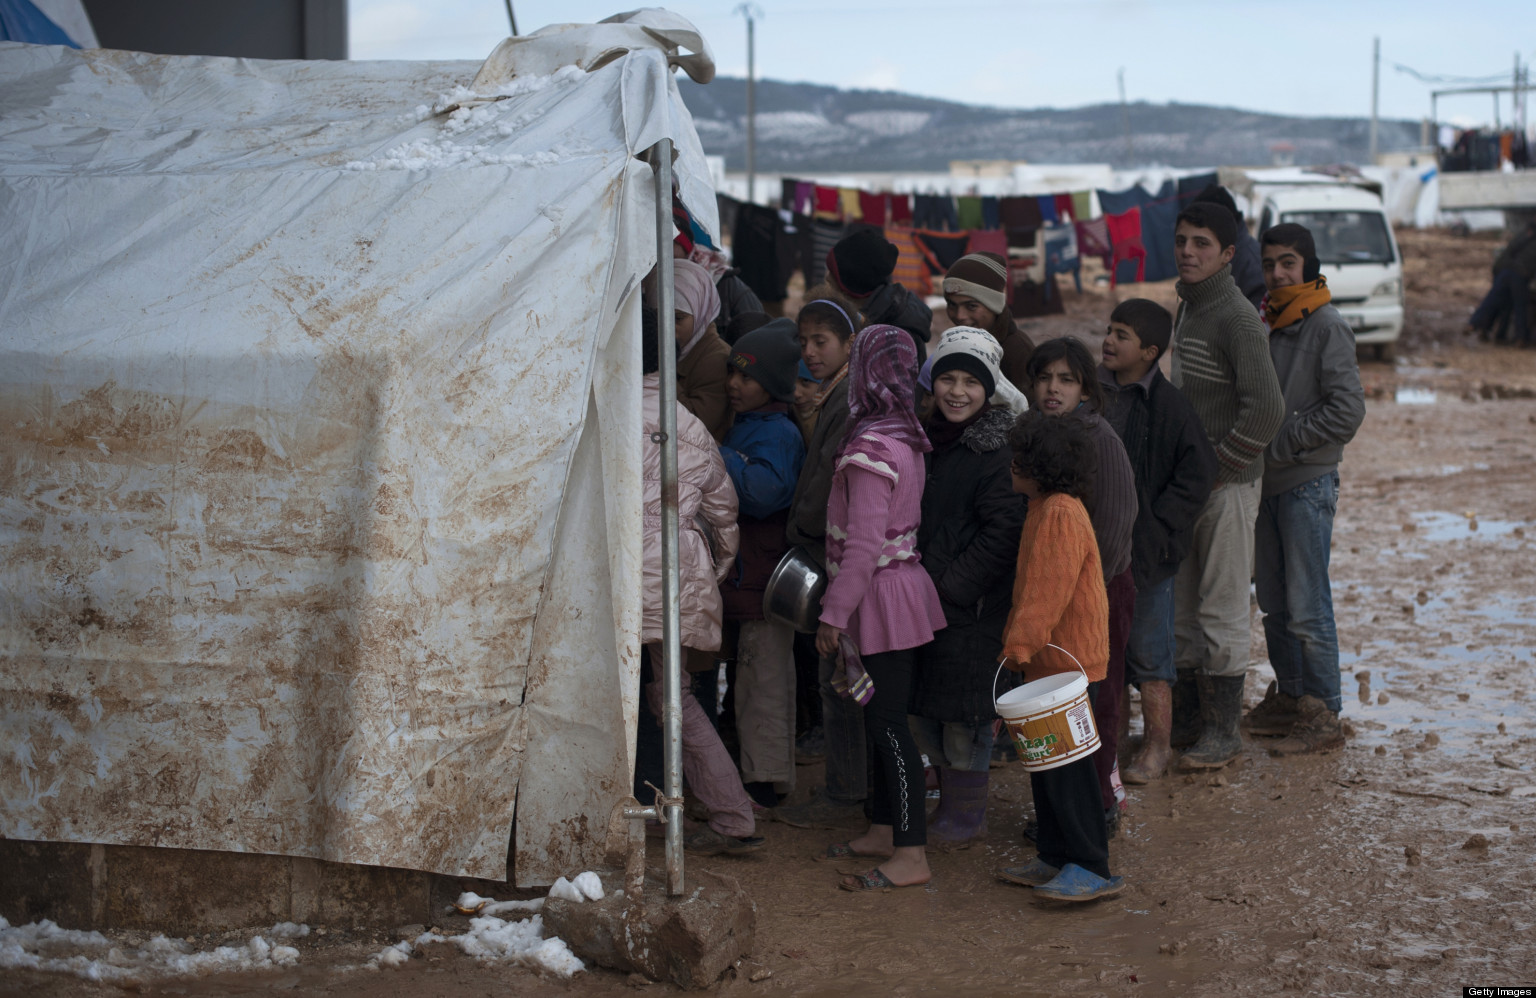 Field Diary: Displaced Children Try to Overcome Shock From Violence in Syria